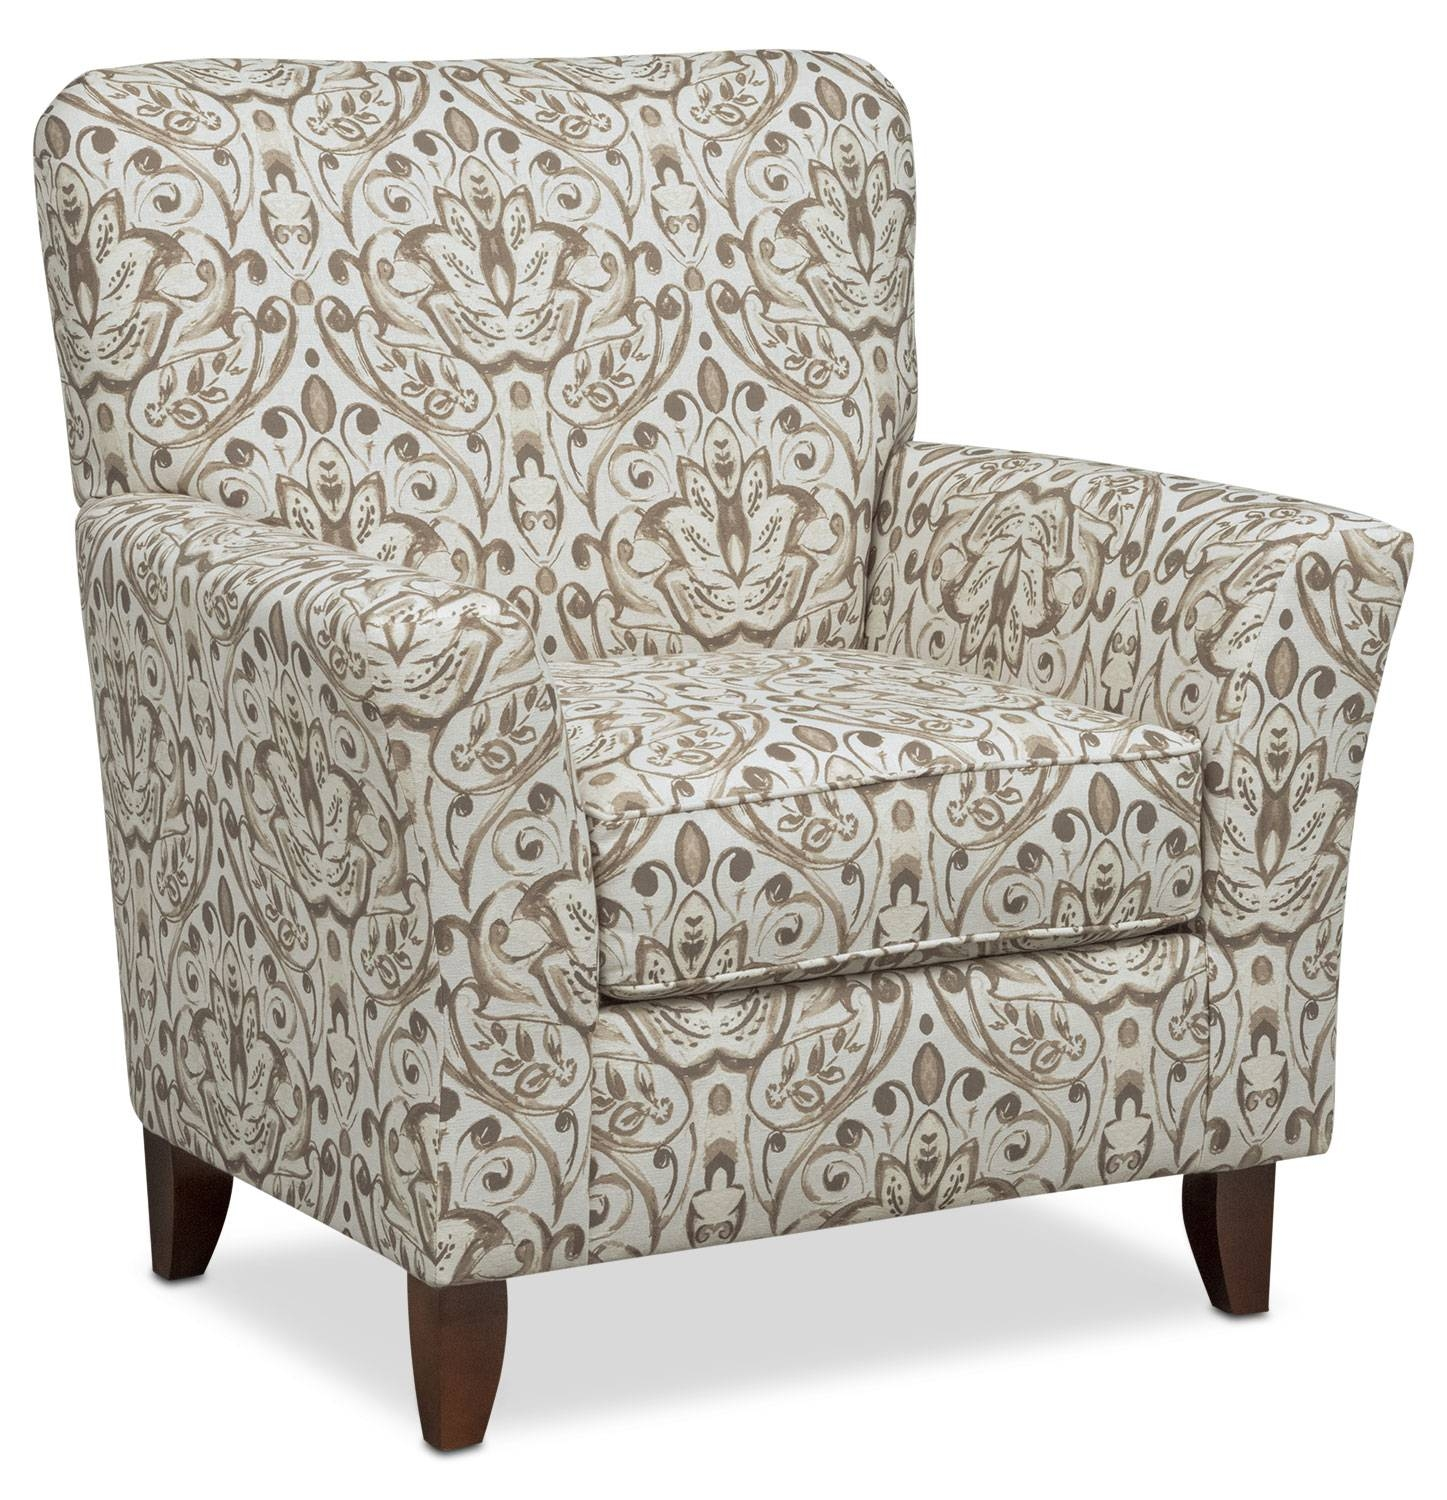 Mckenna Sofa And Accent Chair Set - Sand | Value City Furniture inside Sofa and Accent Chair Set (Image 24 of 30)